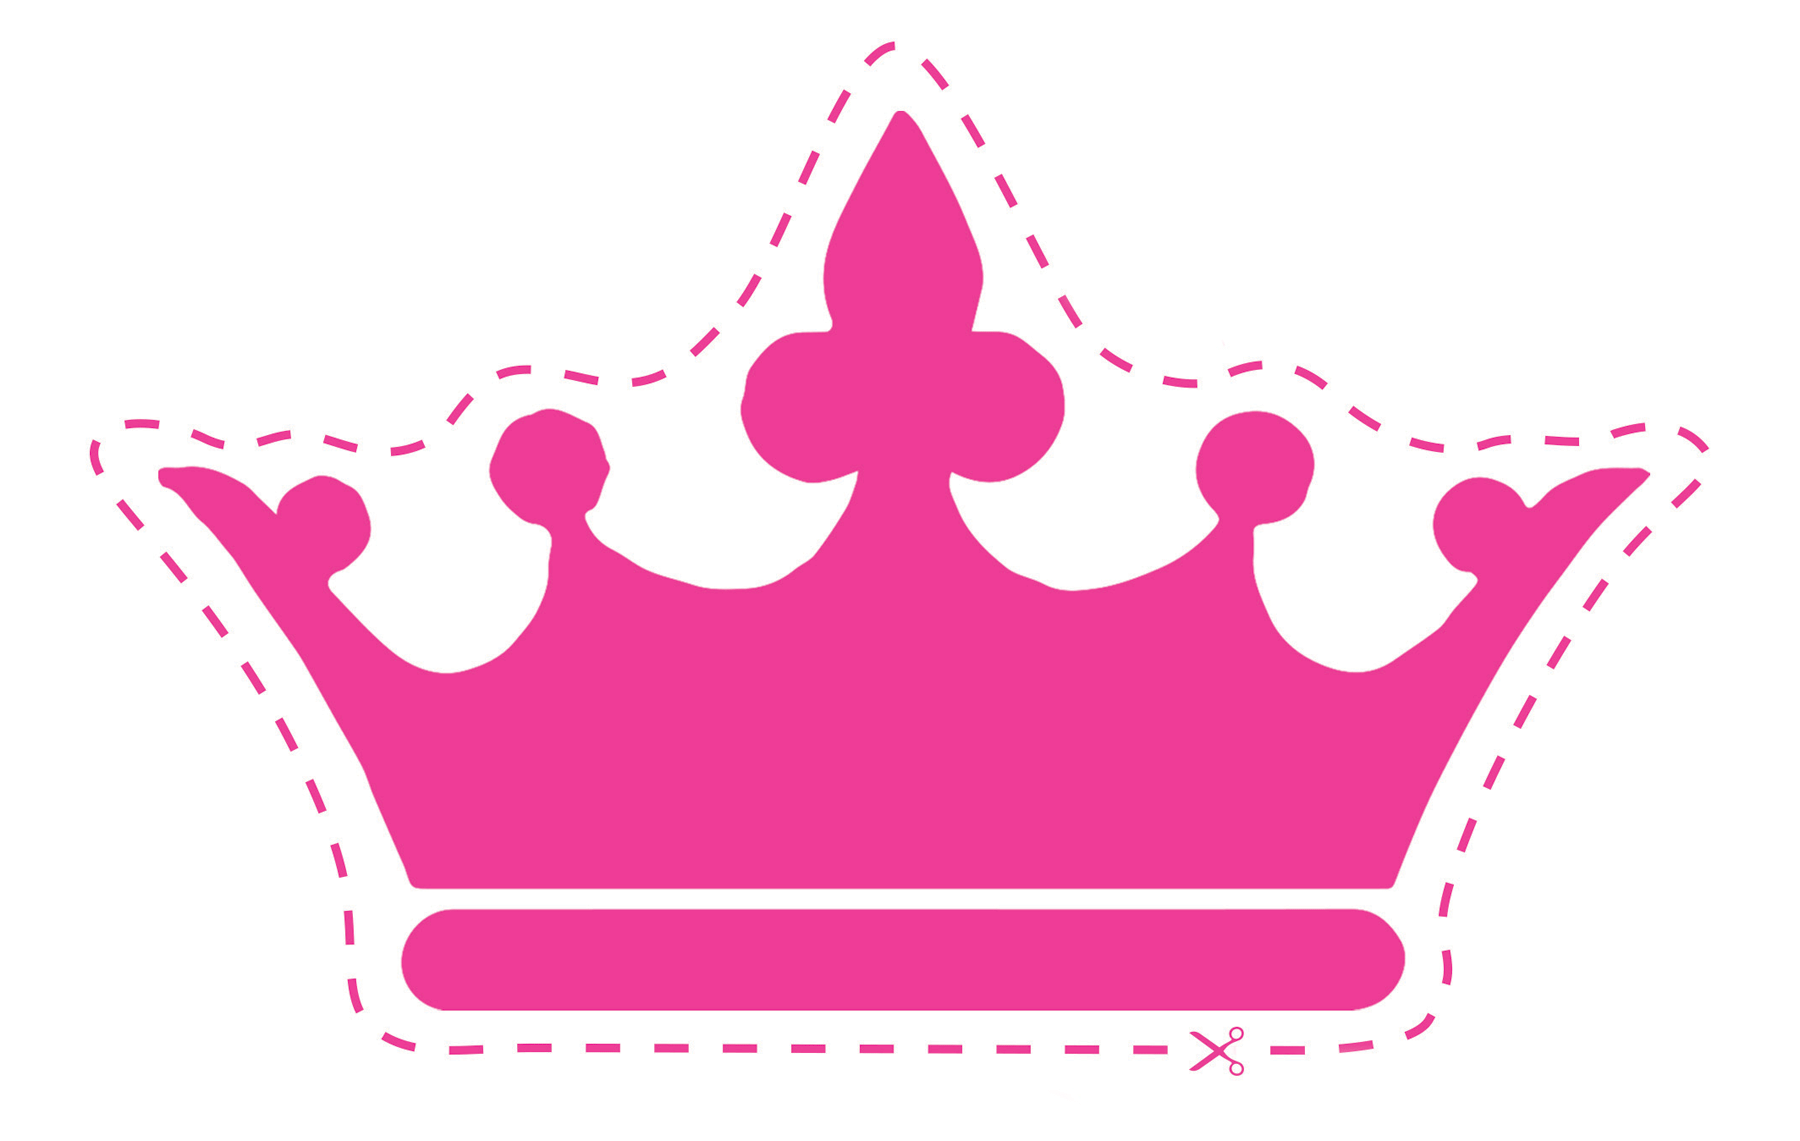 10 best images of cut out crowns and tiaras queen crown template